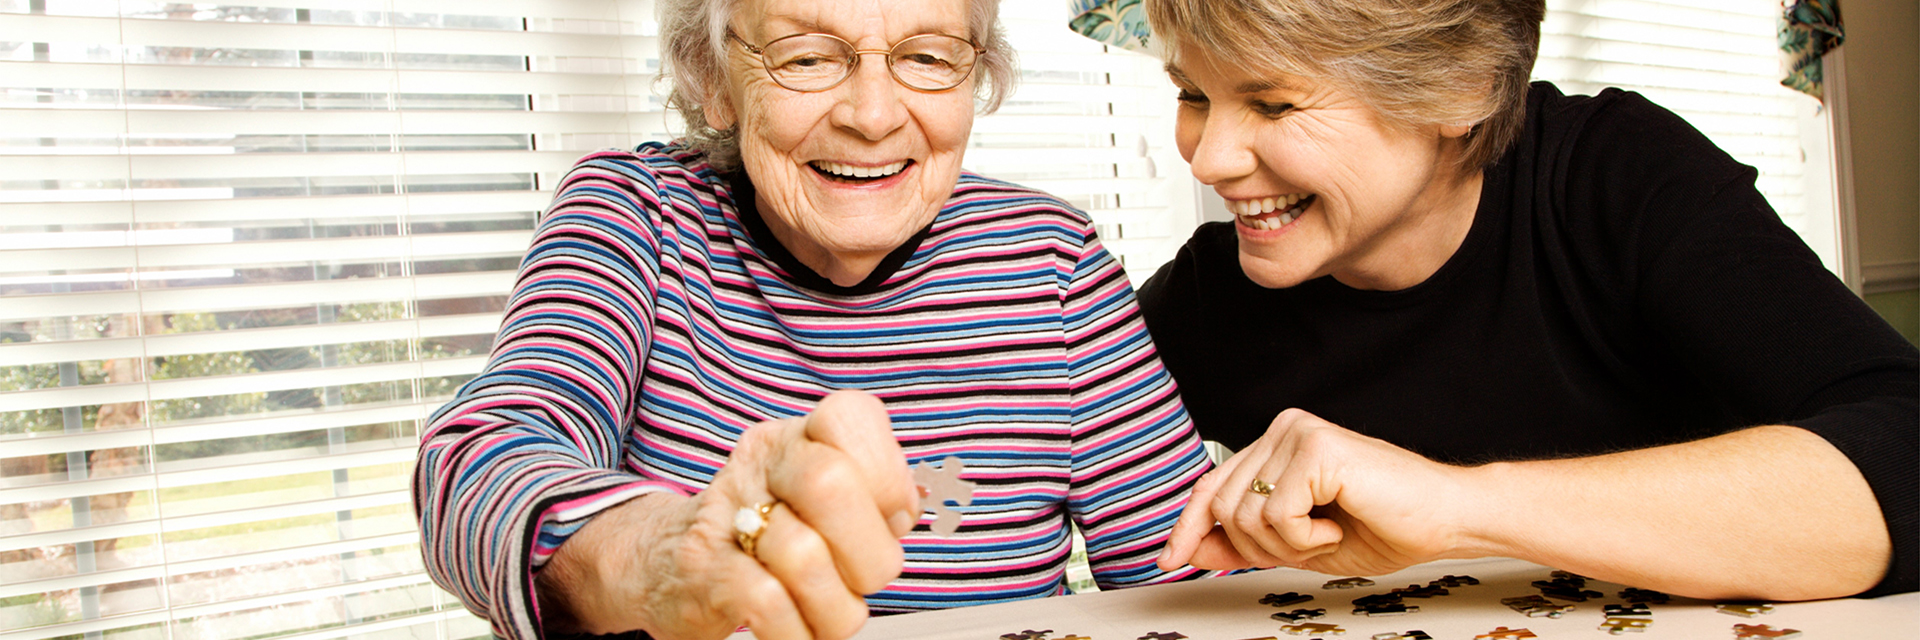 elderly playing puzzle with adult daughter